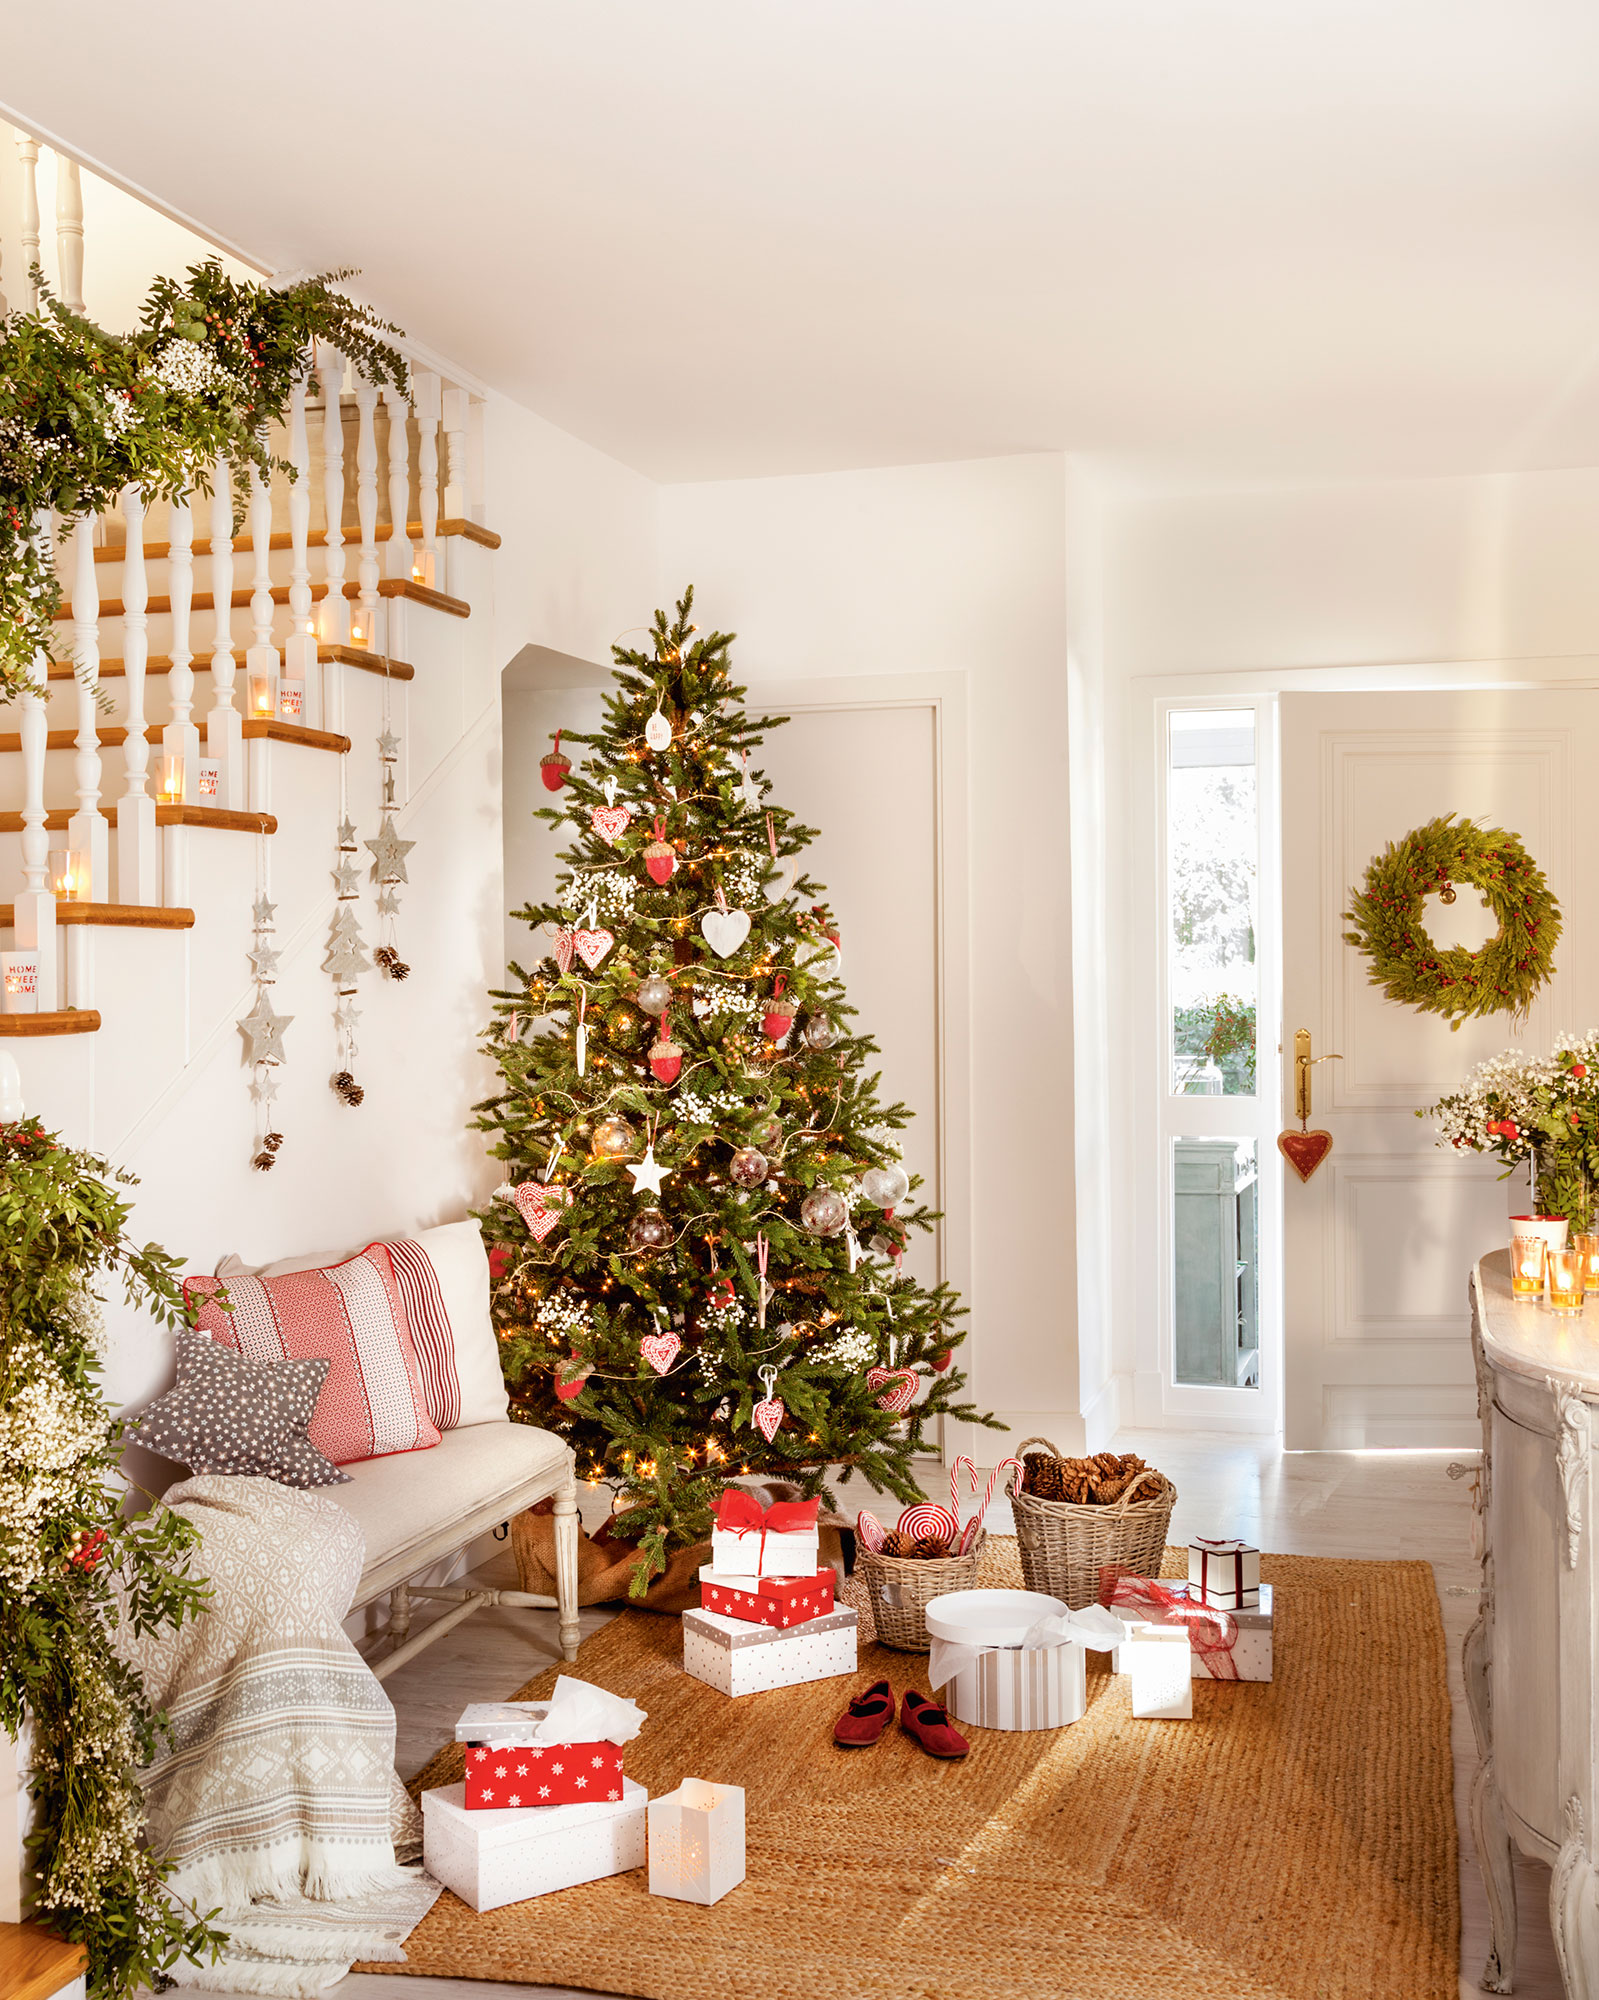 Navidad ideas para decorar de verde natural tu recibidor for Adornos casa